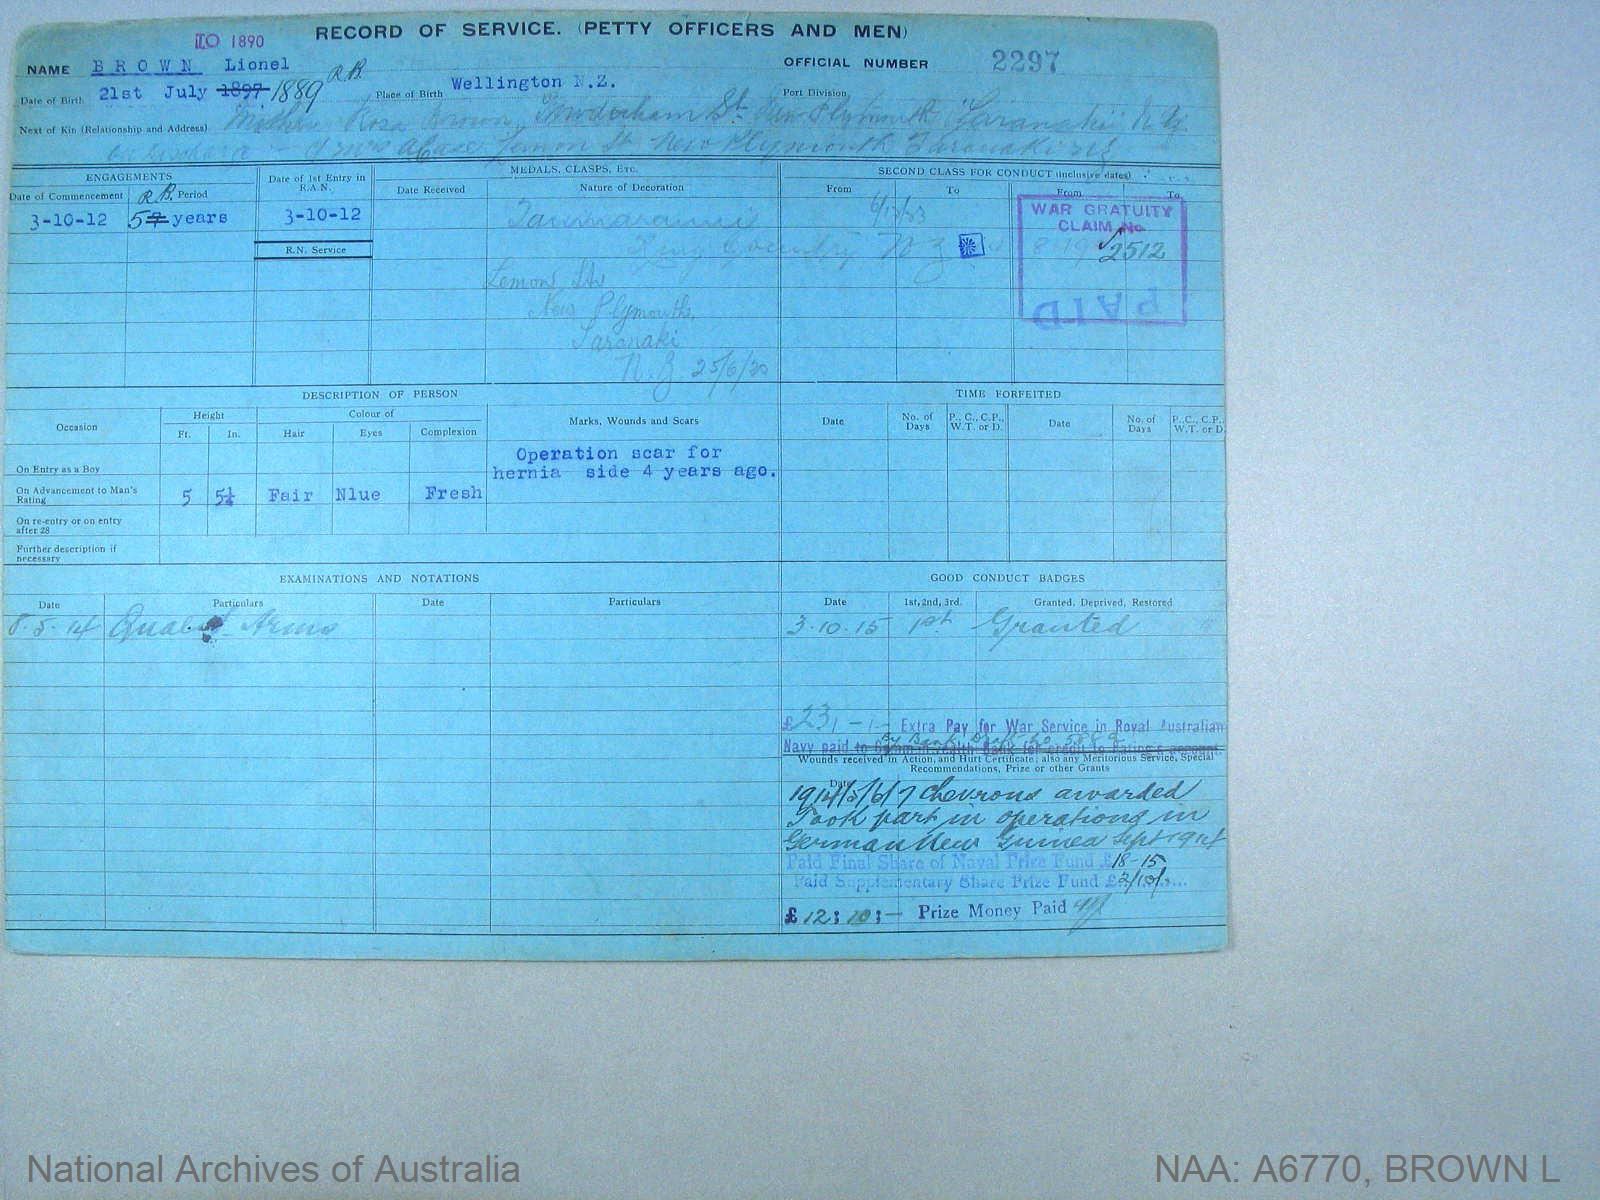 BROWN LIONEL : Service Number - 2297 : Date of birth - 21 Jul 1889 : Place of birth - WELLINGTON NZ : Place of enlistment - Unknown : Next of Kin - BROWN ROSA